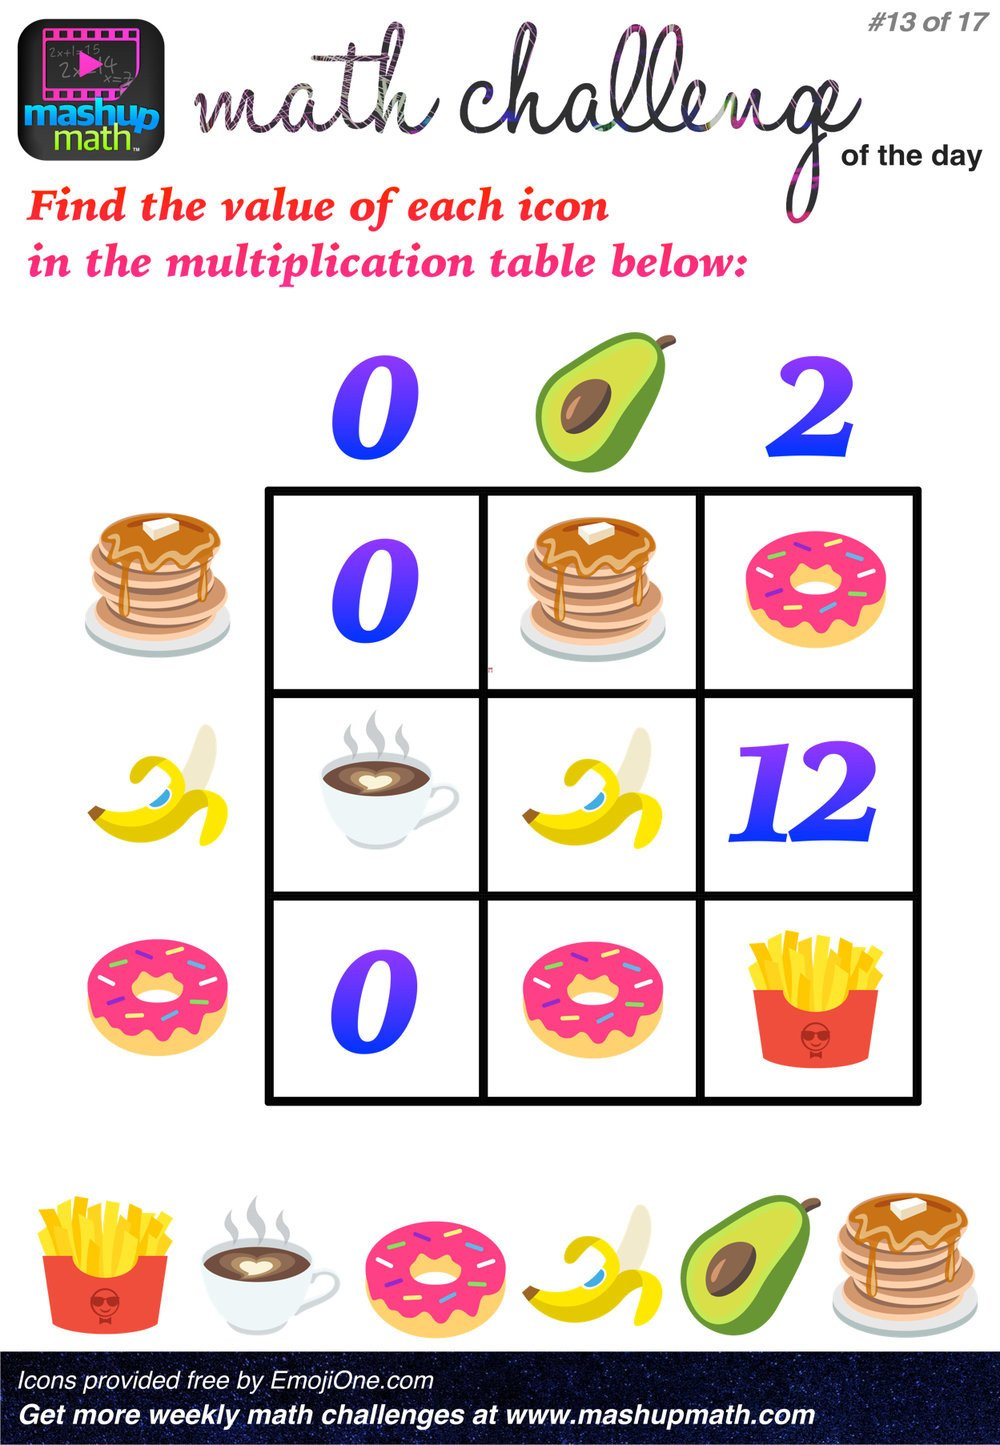 are you ready for 17 awesome new math challenges rq=17 awesome